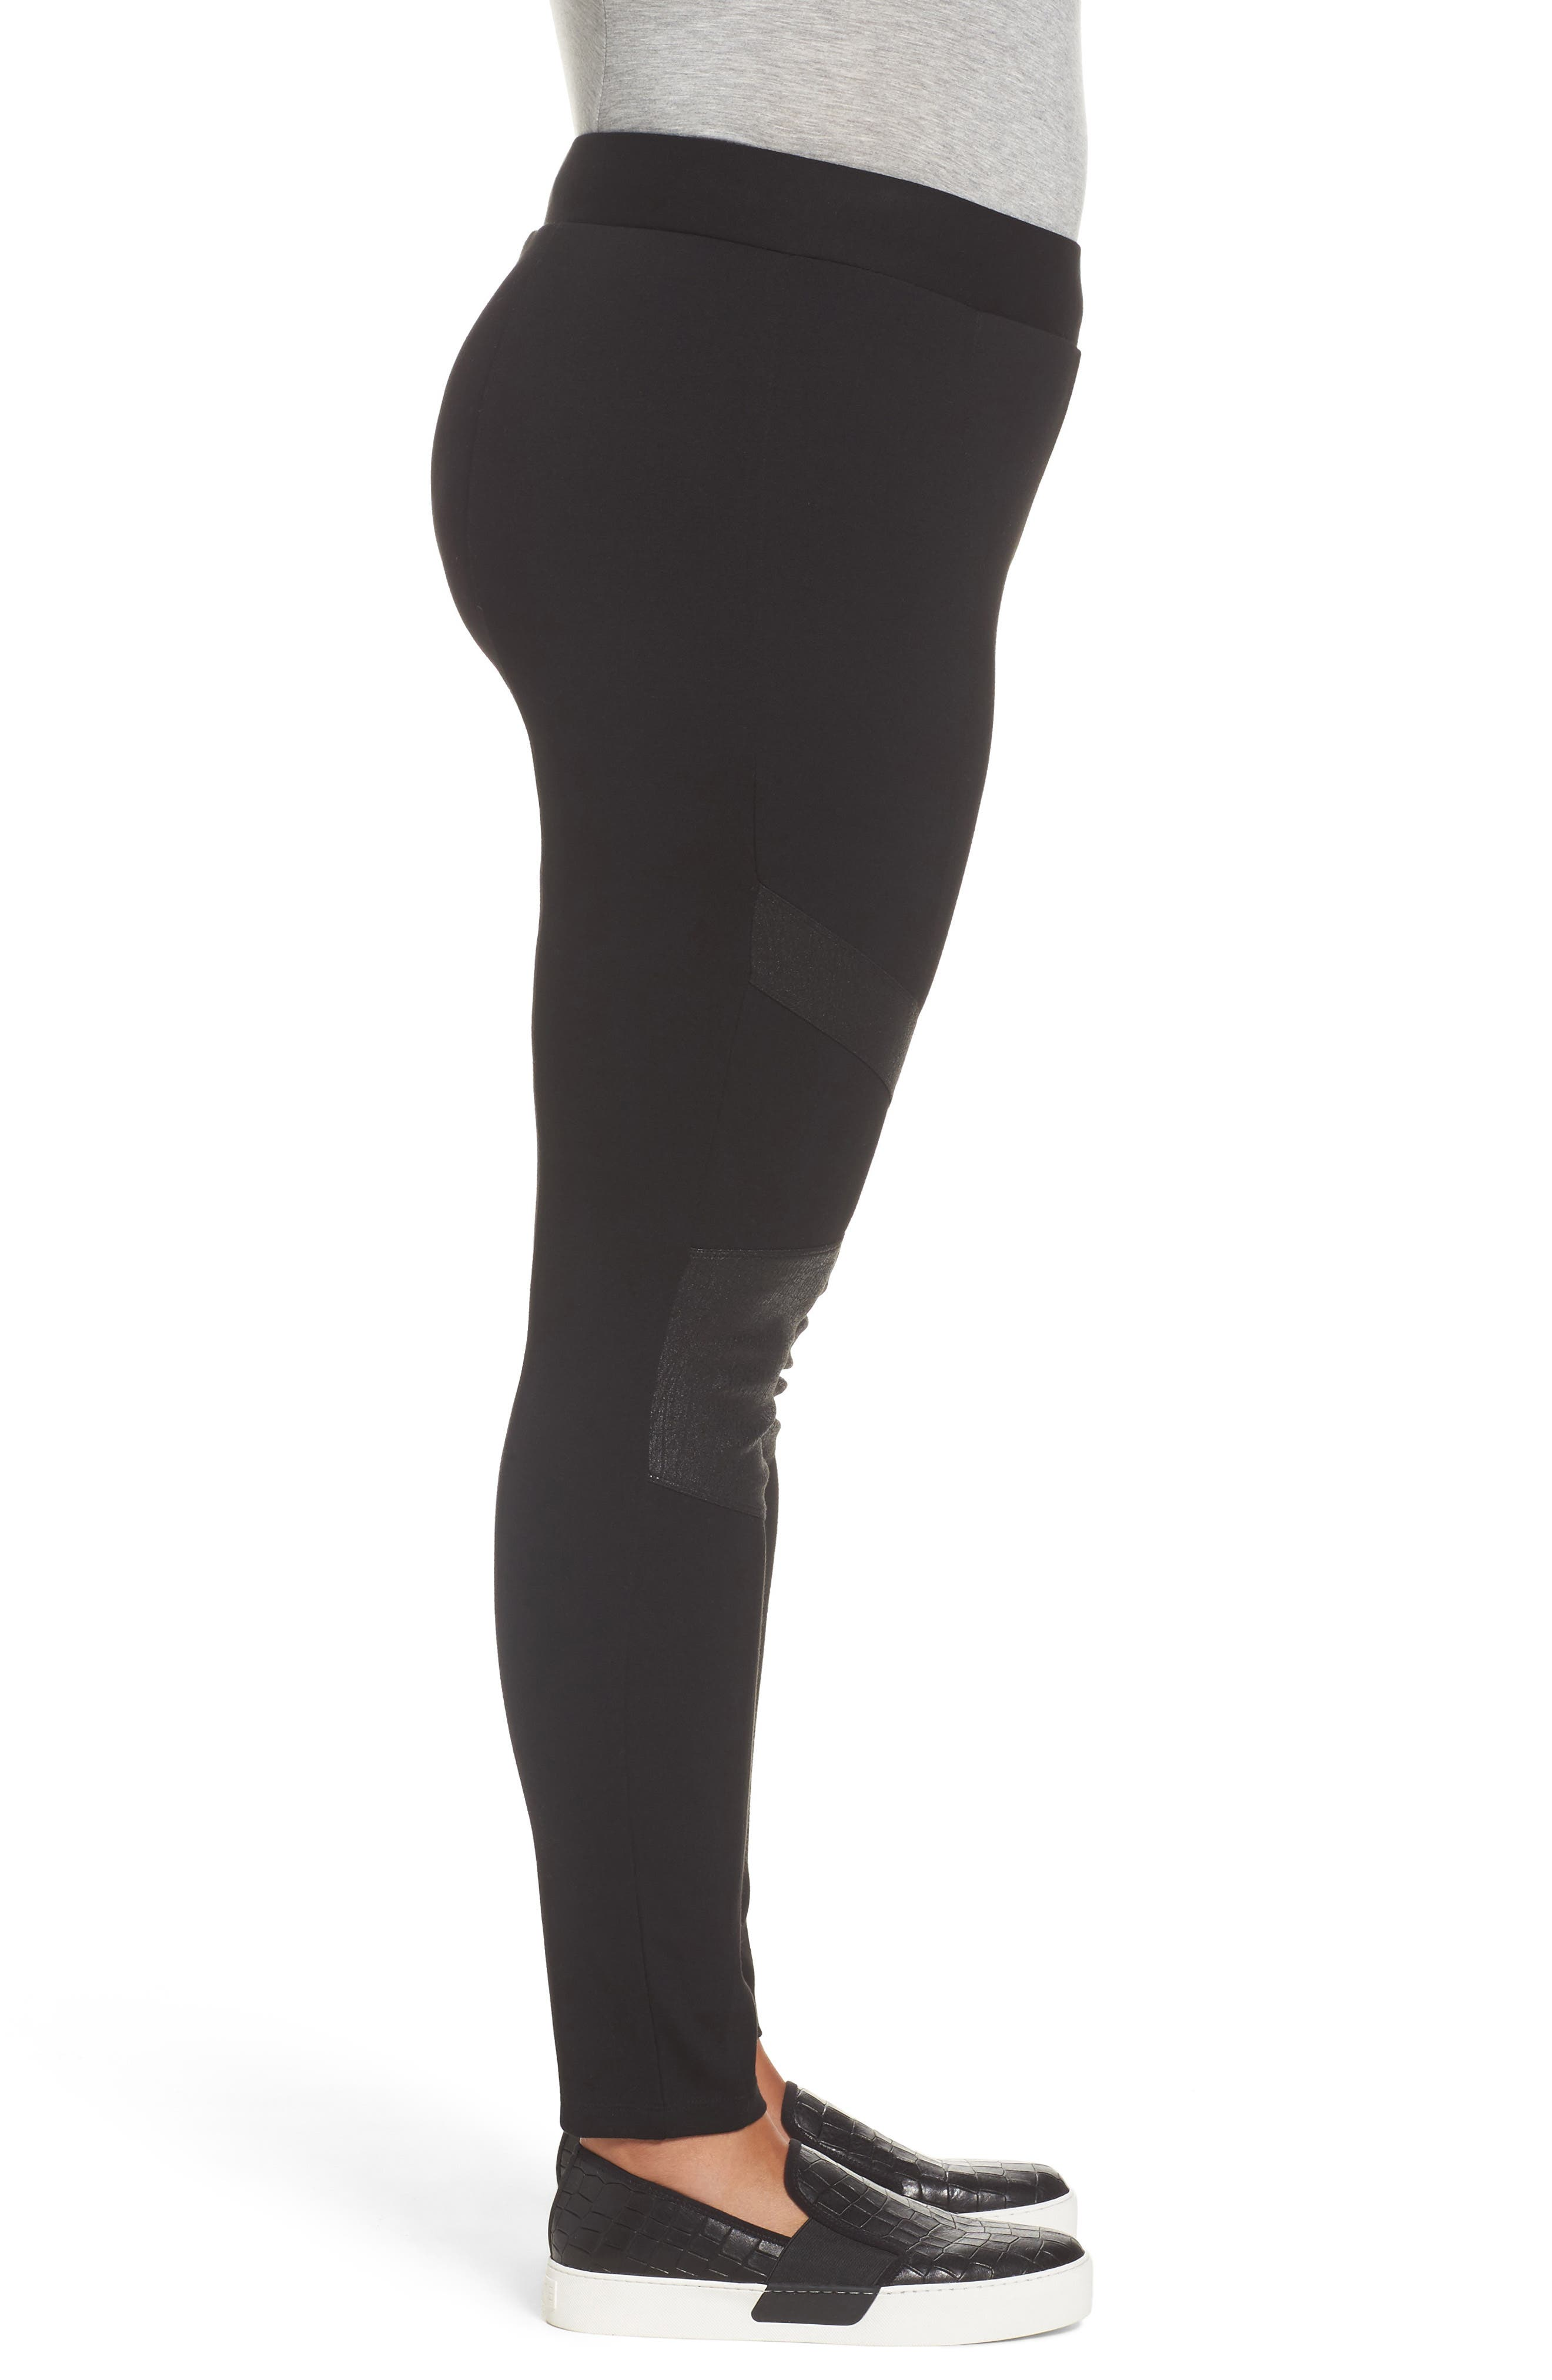 TWO BY VINCE CAMUTO,                             High Rise Lacquer Inset Moto Leggings,                             Alternate thumbnail 3, color,                             RICH BLACK